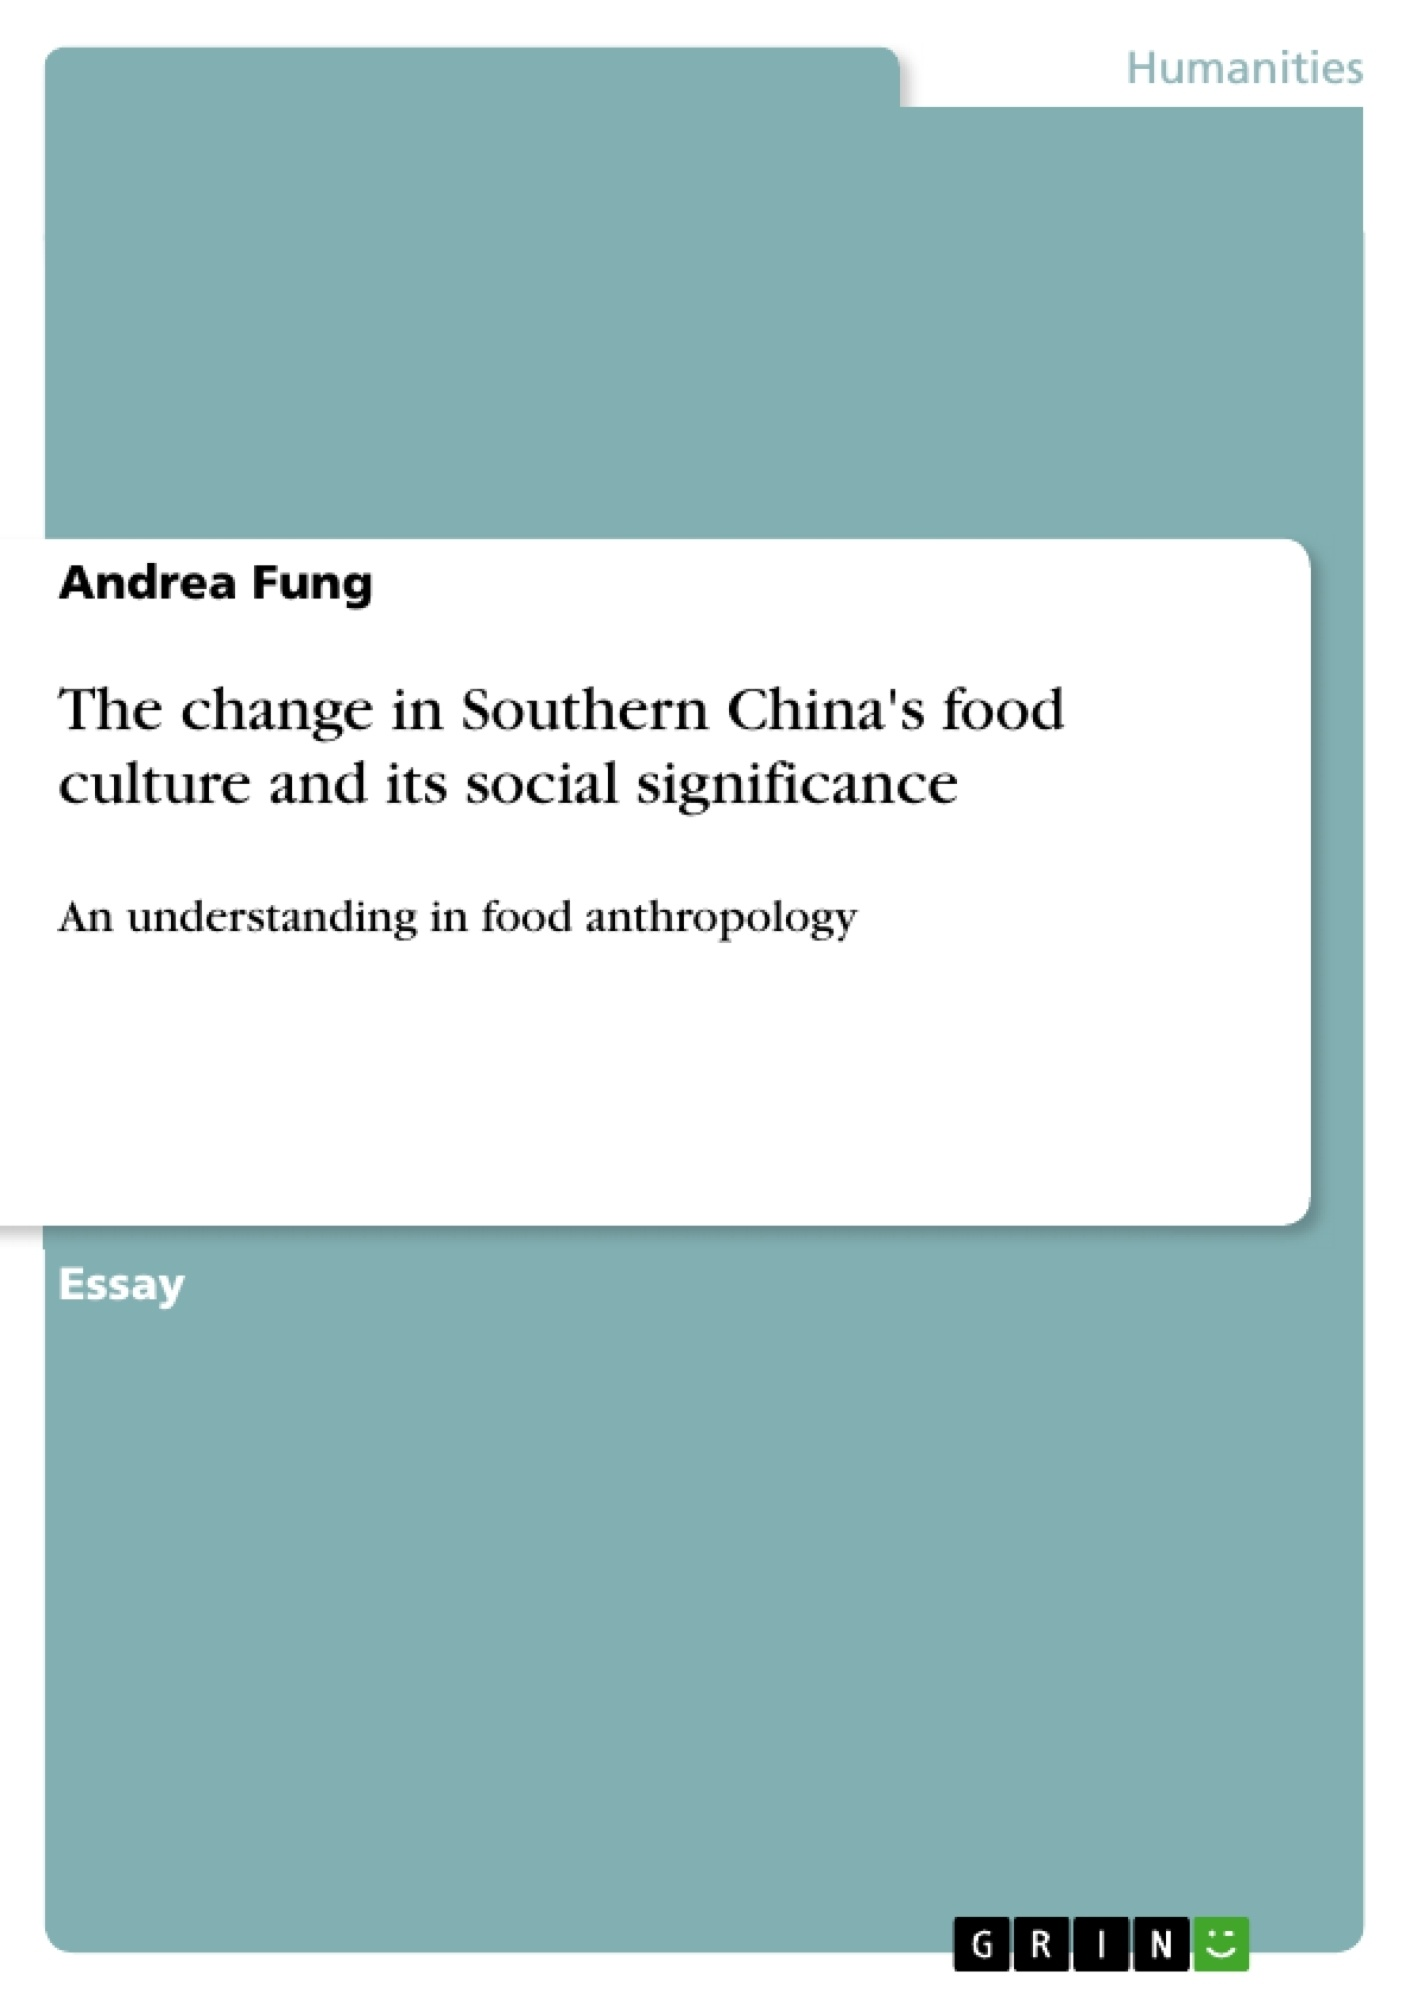 Title: The change in Southern China's food culture and its social significance